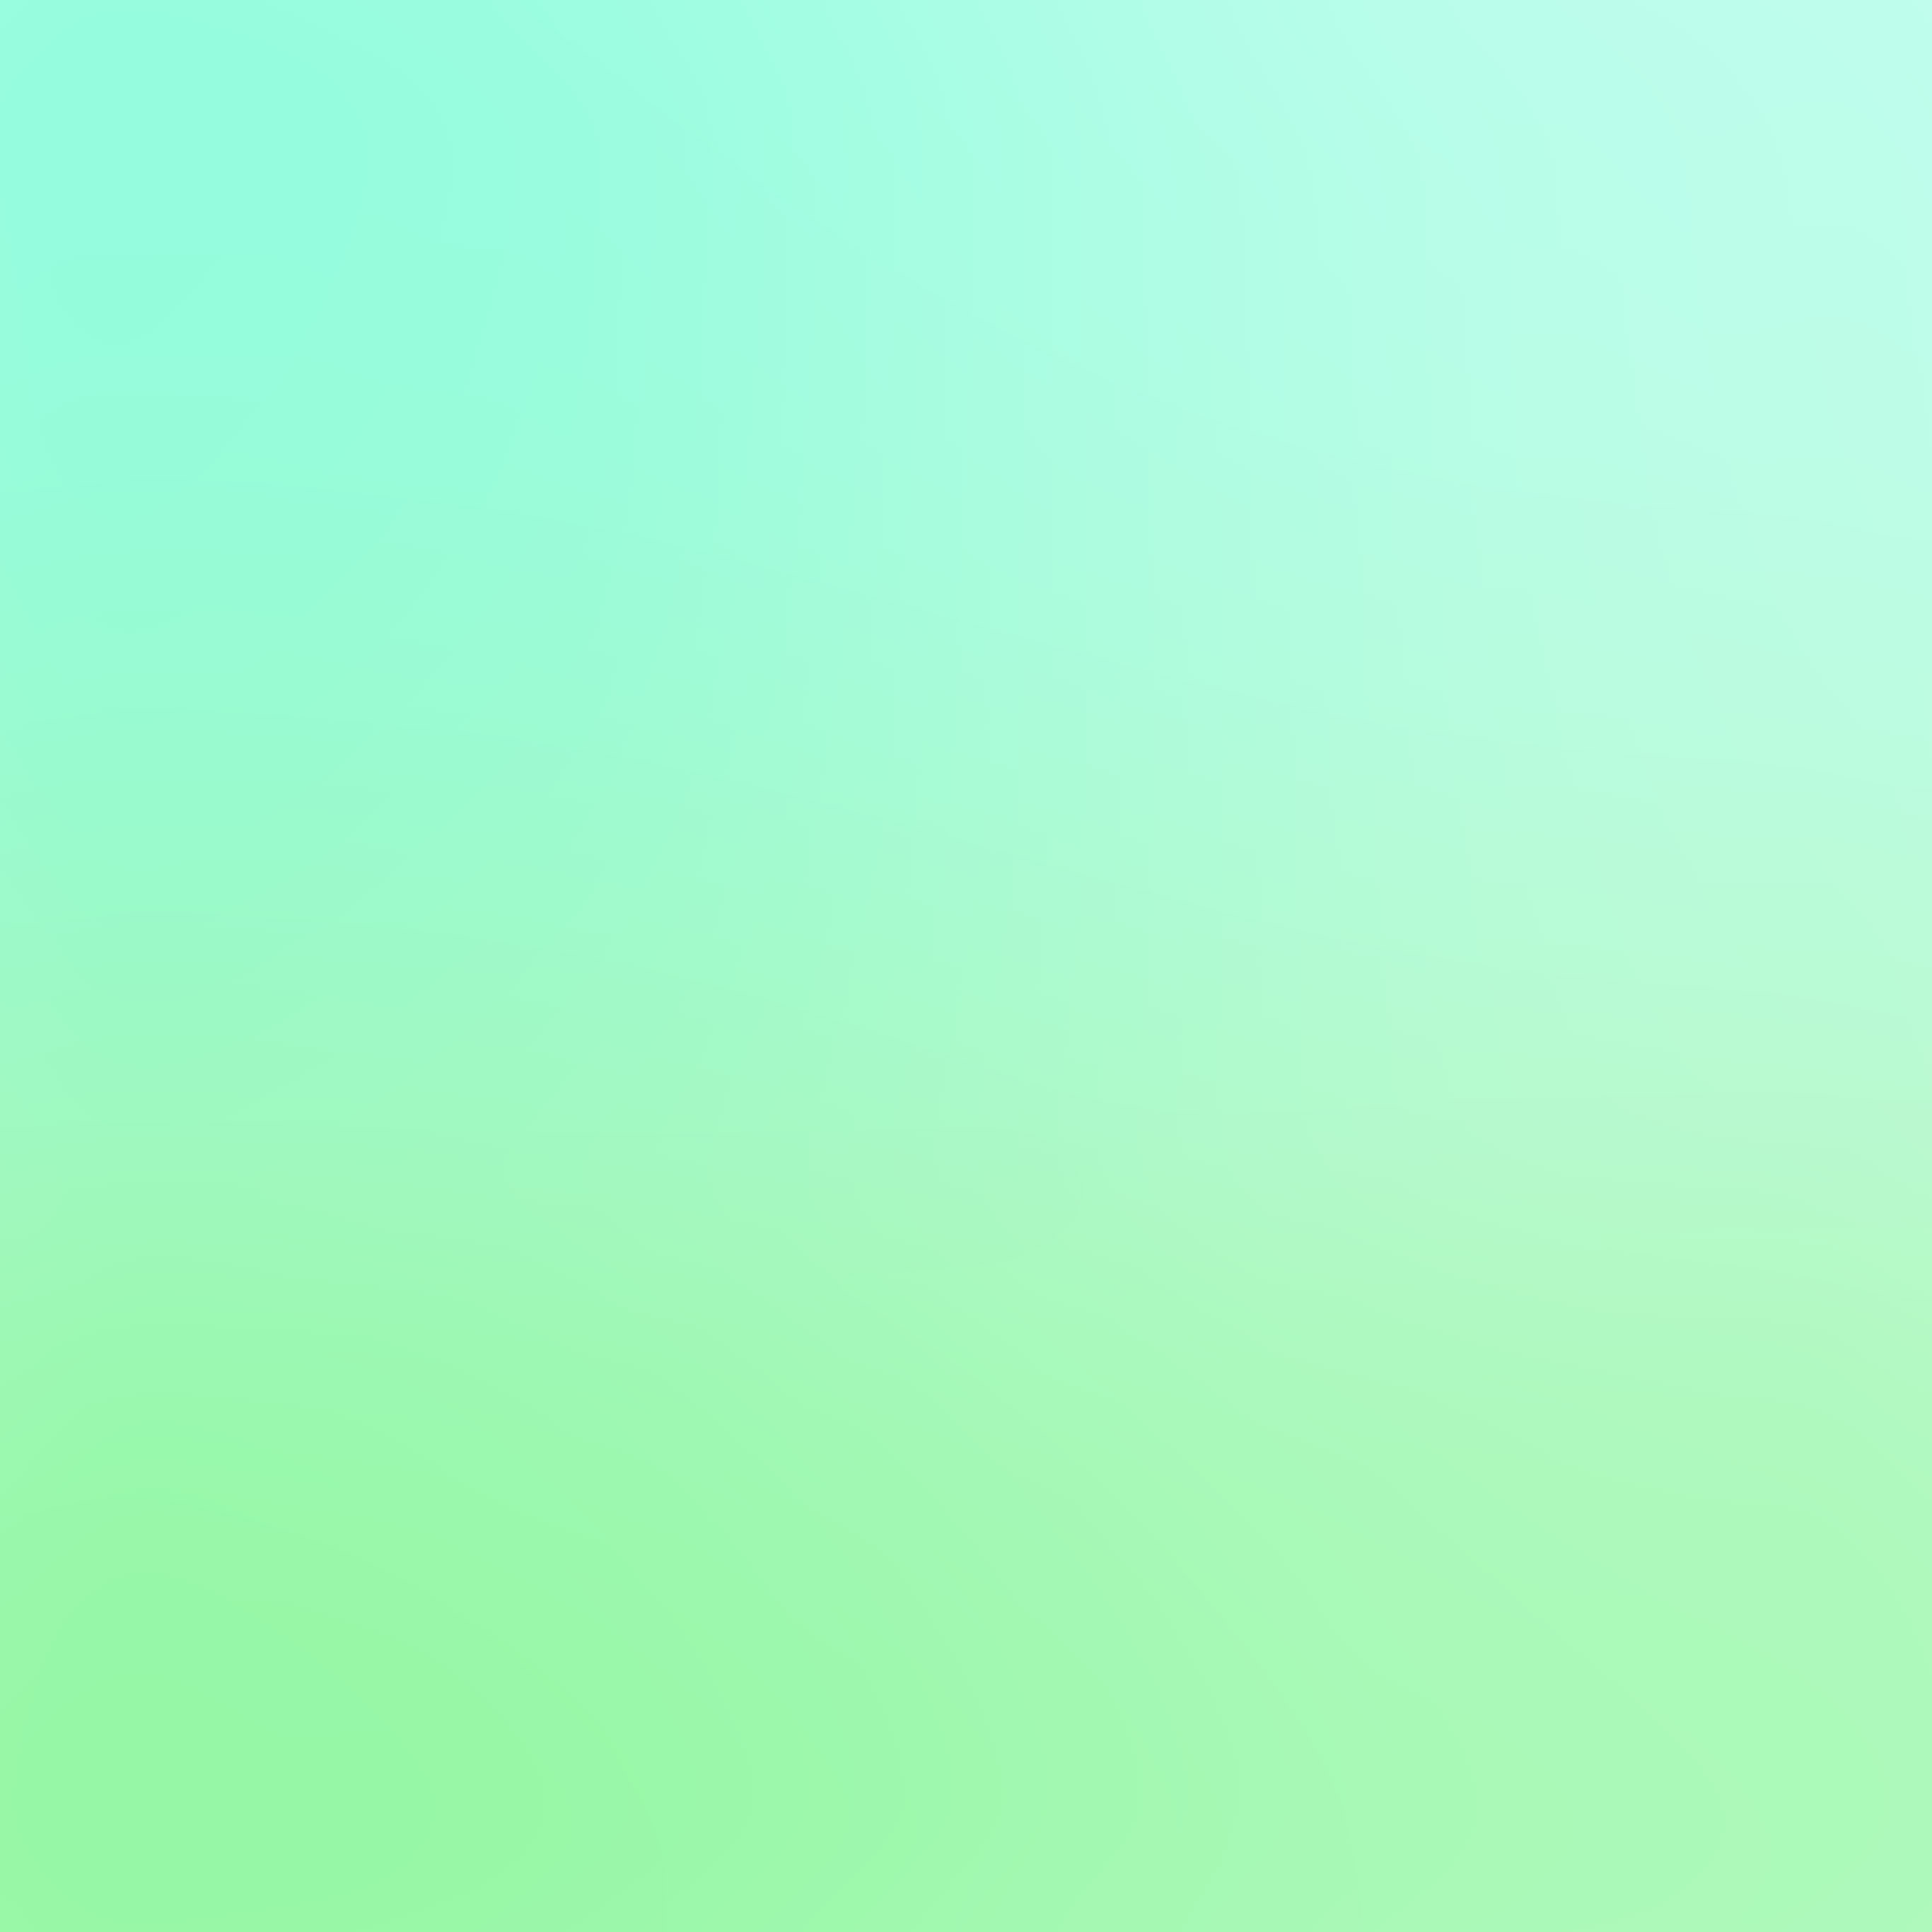 Sm59 Cool Pastel Blur Gradation Mint Green Wallpaper